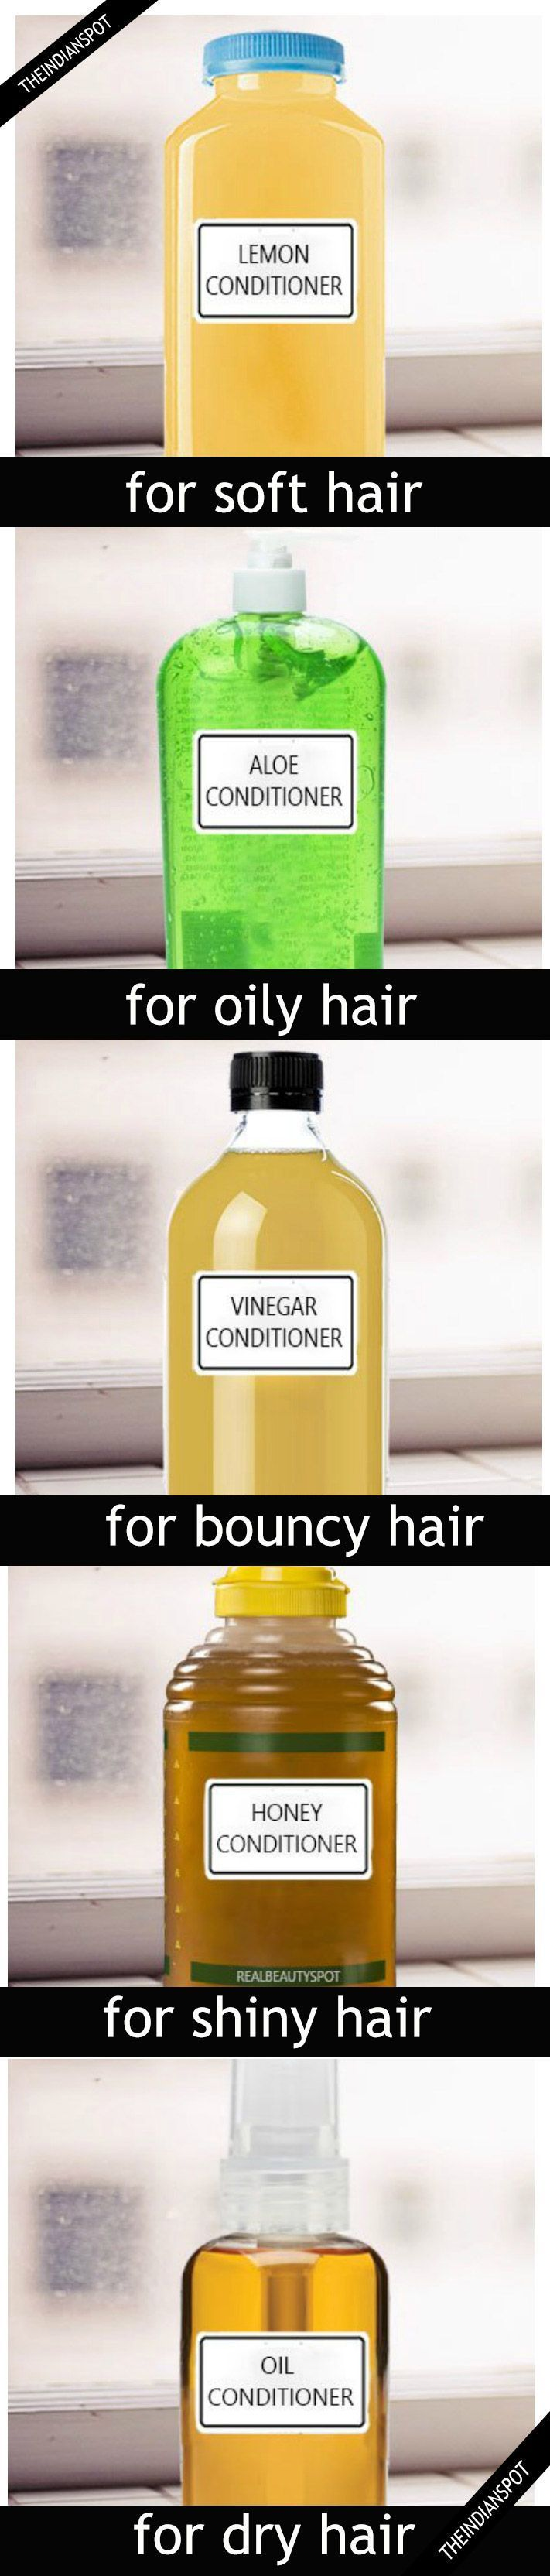 5 Natural DIY Hair Conditioner for All Hair Types #naturalskincare #skincareproducts #Australianskincare #AqiskinCare #australianmade